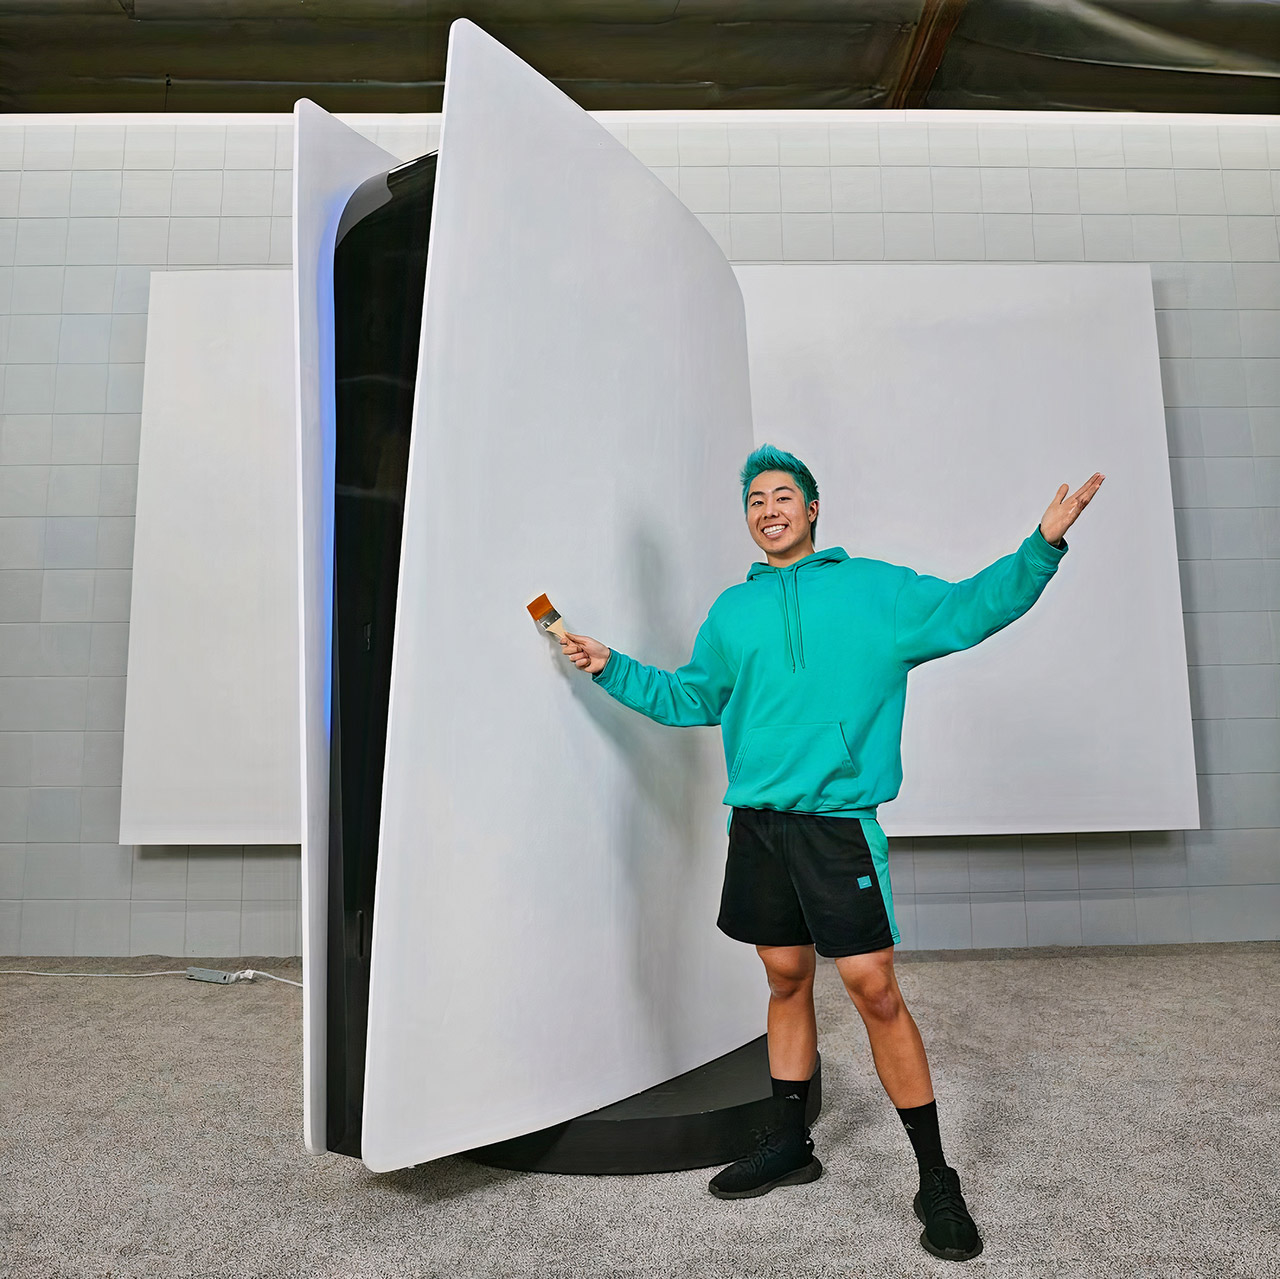 Largest PS5 Console